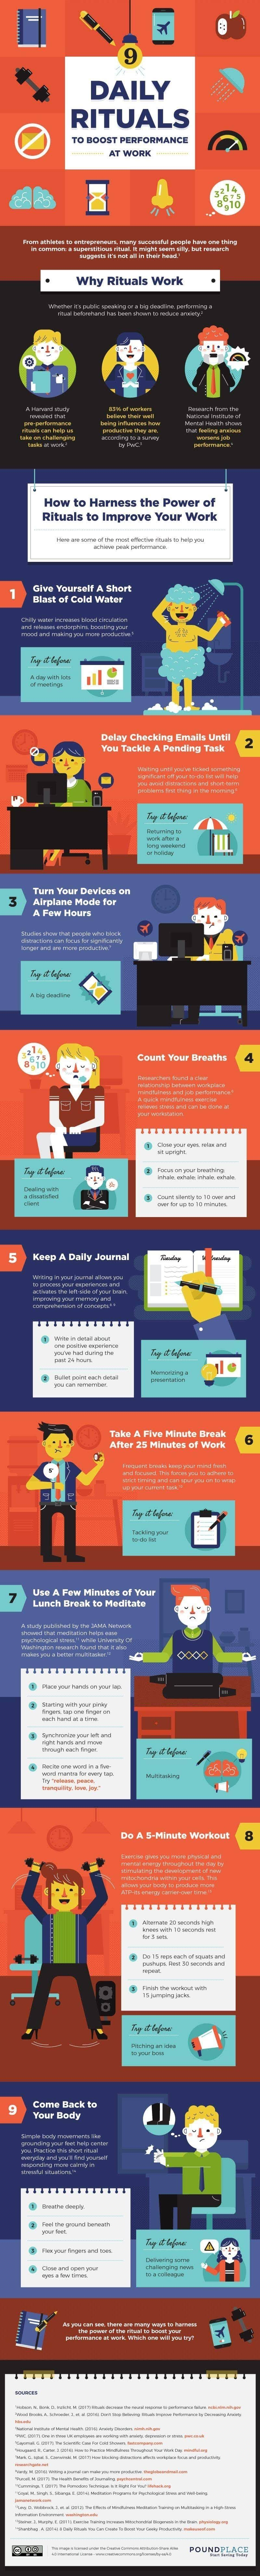 9 Daily rituals to increase work performance #infographic